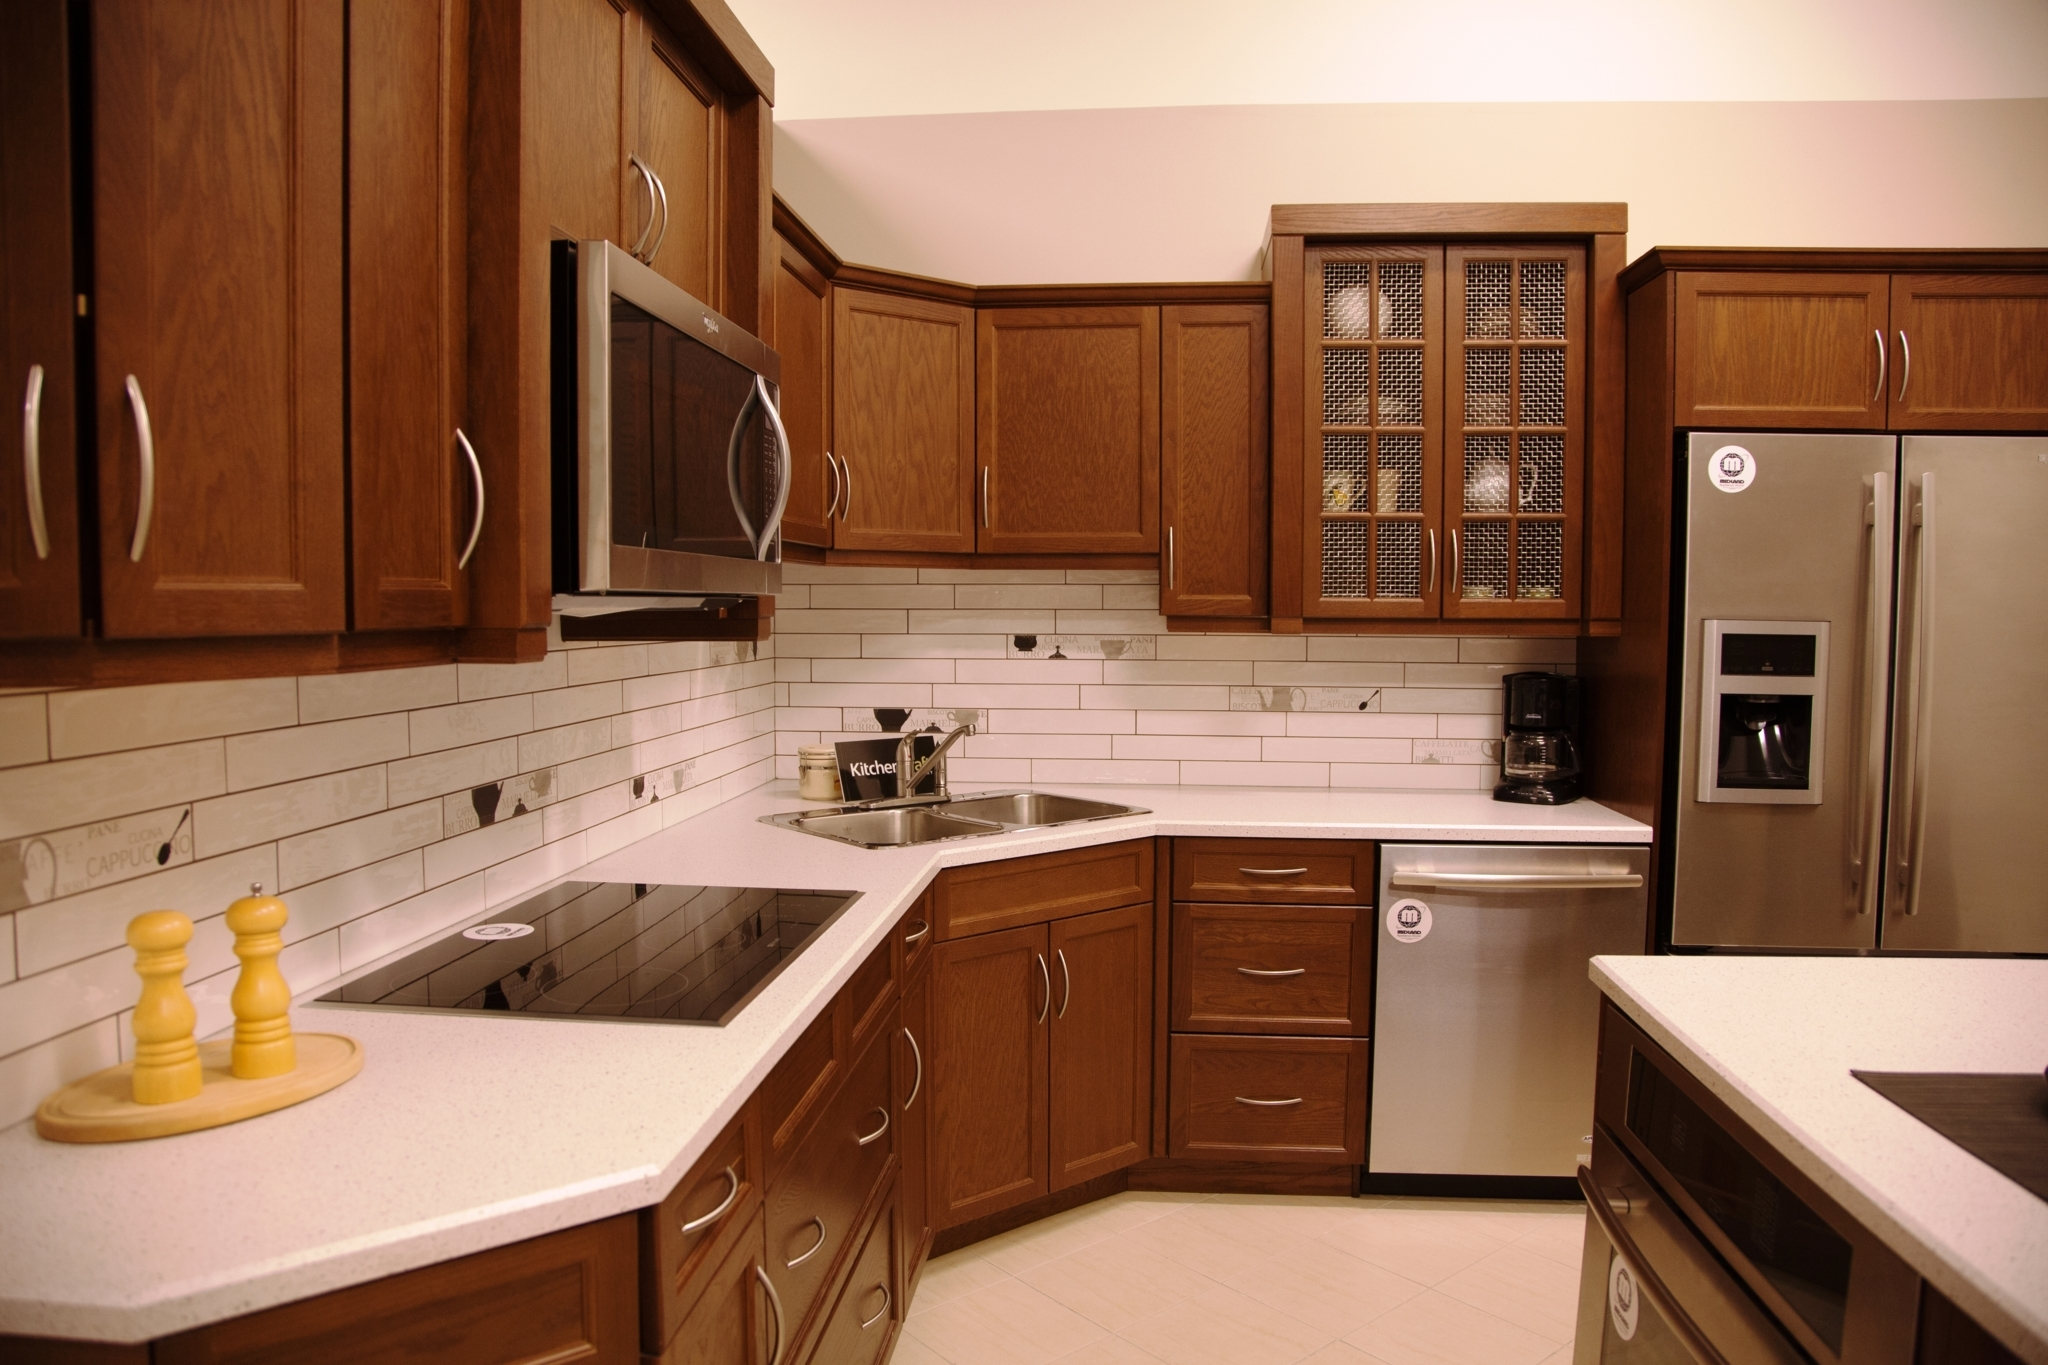 Kitchen craft cabinetry winnipeg jobs kitchen cabinets for Kitchen craft cabinets